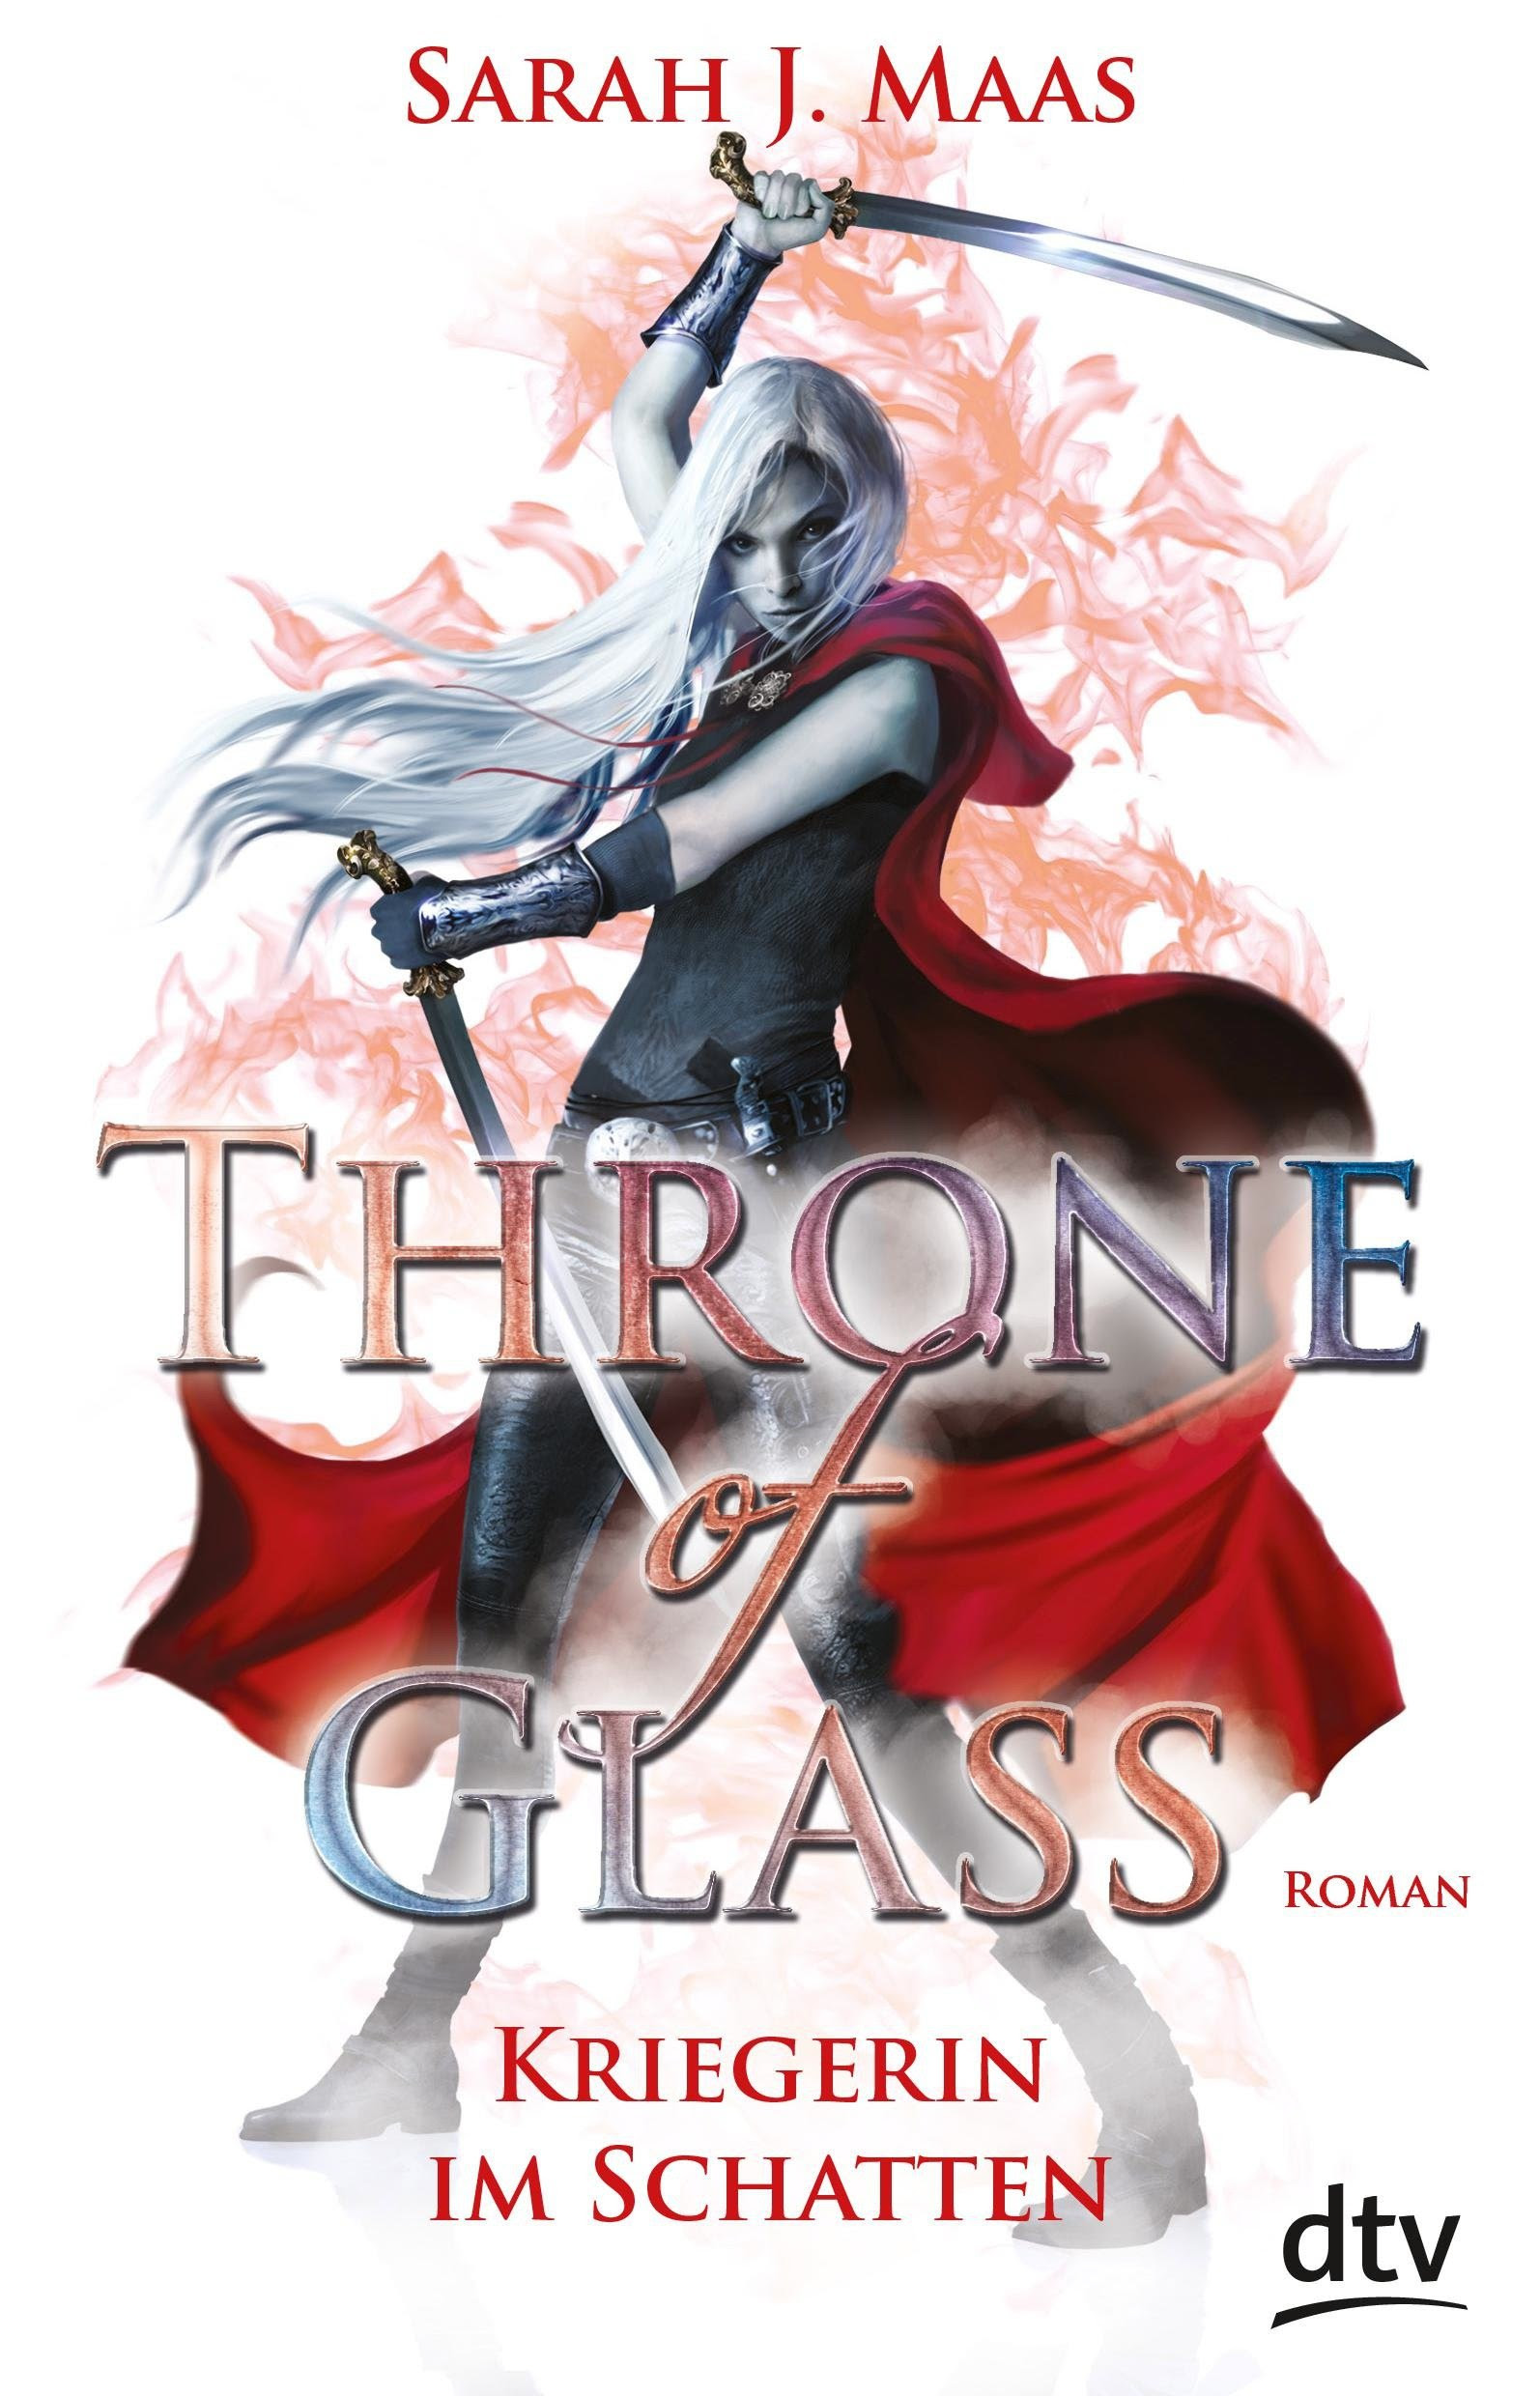 http://www.amazon.de/Throne-Glass-Kriegerin-Schatten-Roman/dp/3423716525/ref=sr_1_3_twi_1_pap?s=books&ie=UTF8&qid=1437932160&sr=1-3